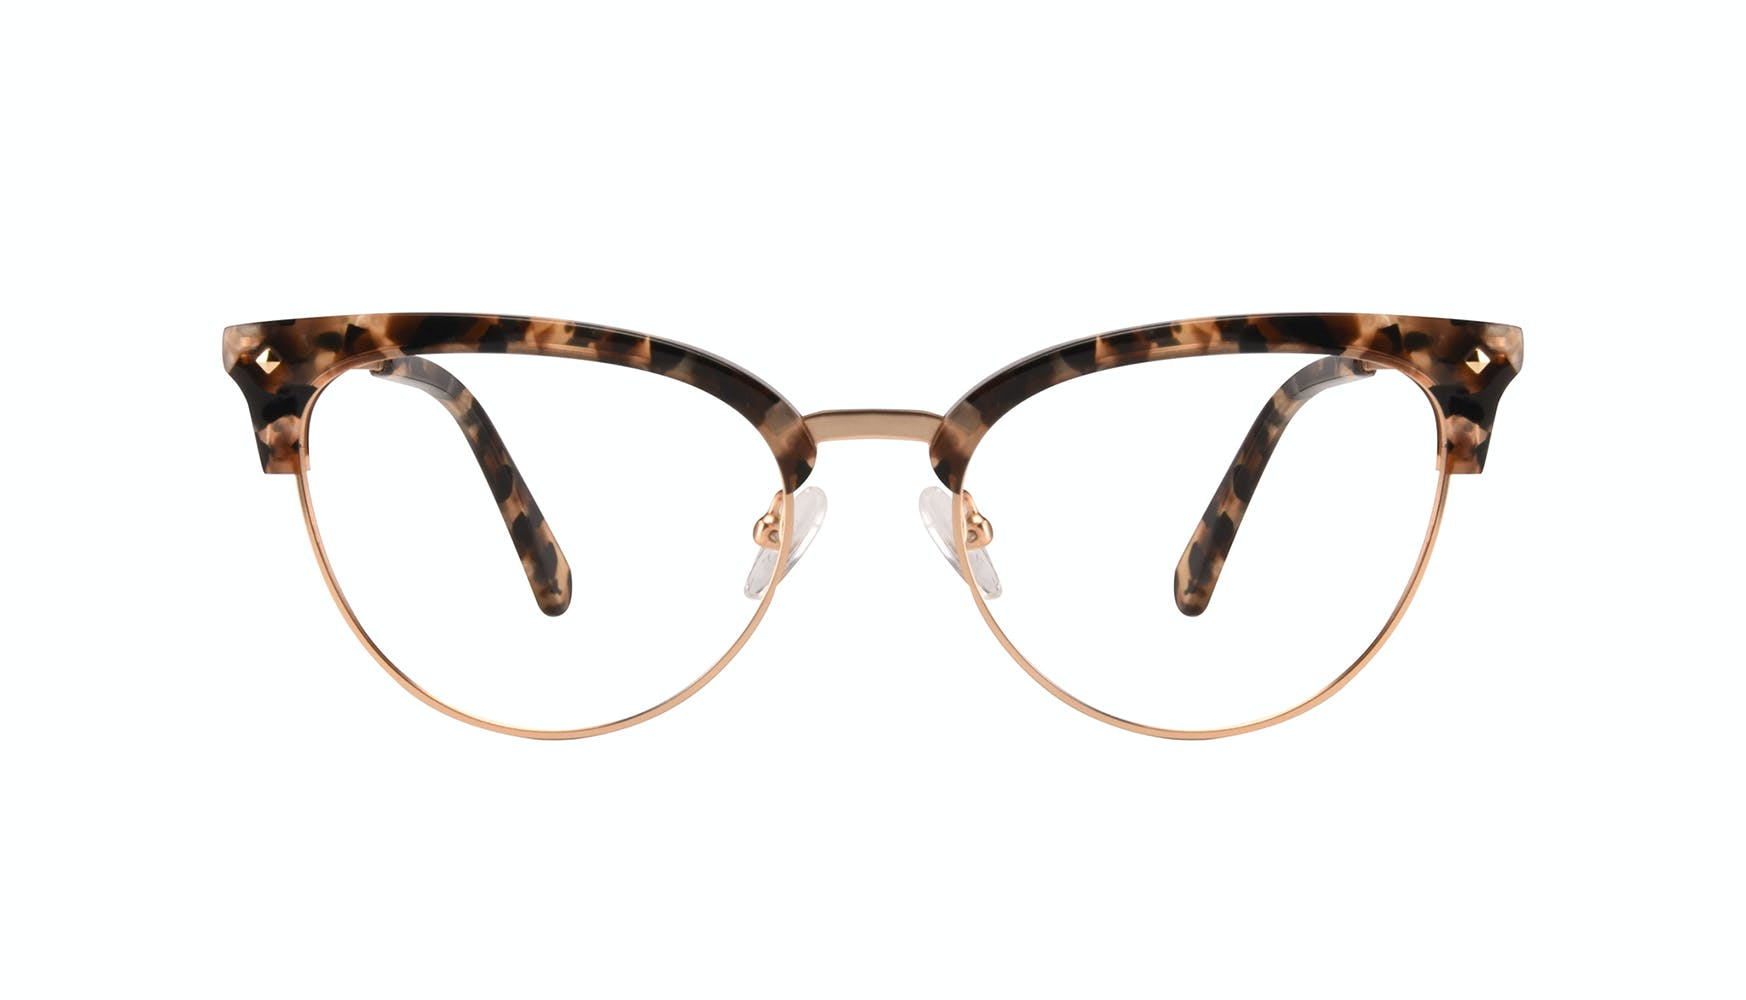 Affordable Fashion Glasses Cat Eye Daring Cateye Eyeglasses Women Moon Gold Flake